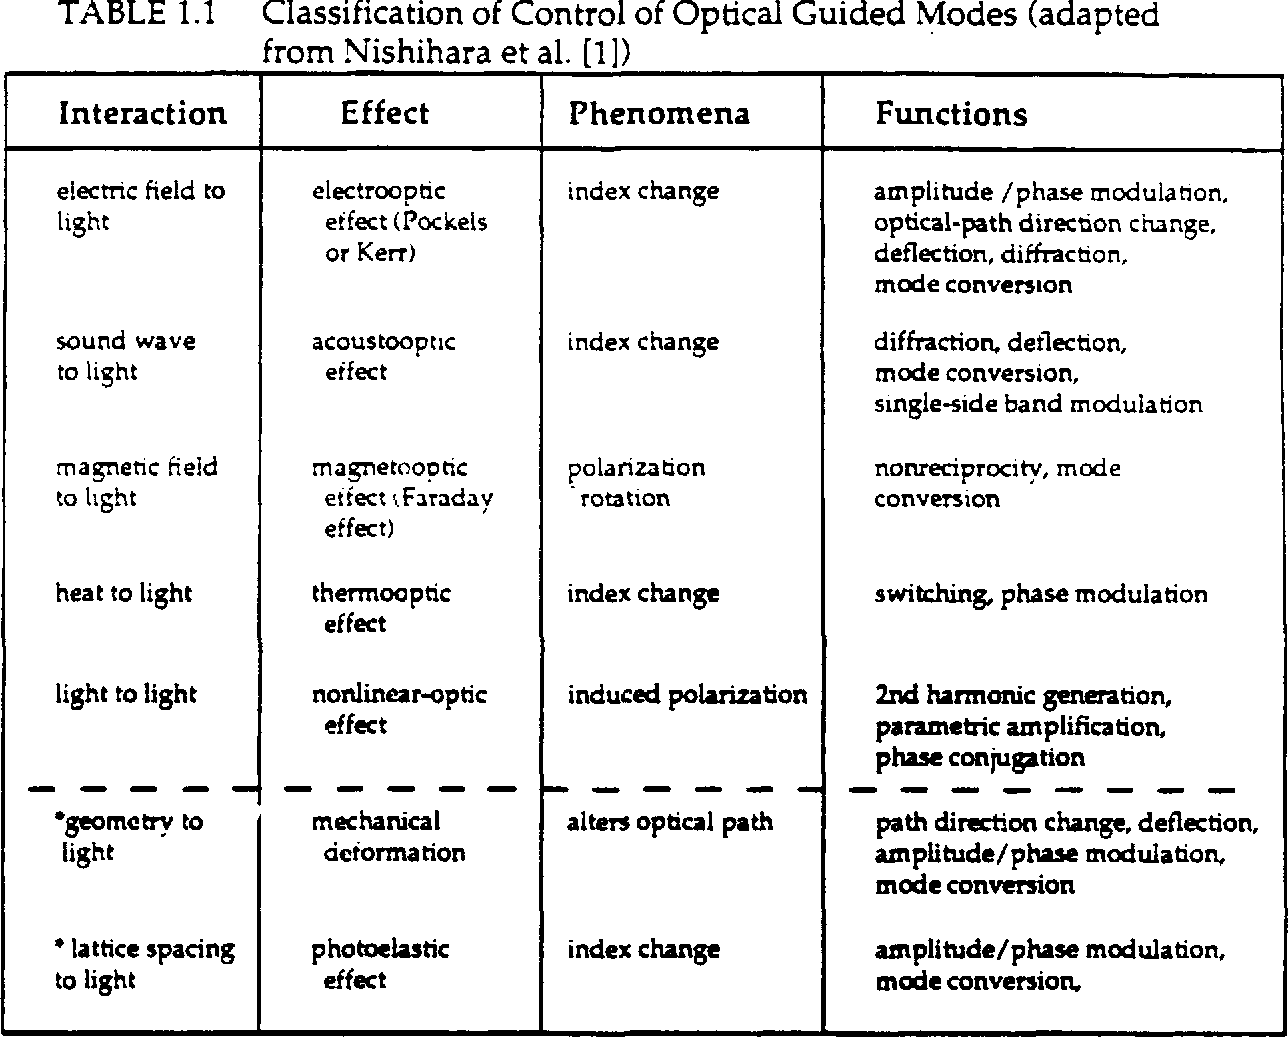 TABLE 1.1 Classification of Control of Optical Guided Modes (adapted from Nishihara et al. [I)